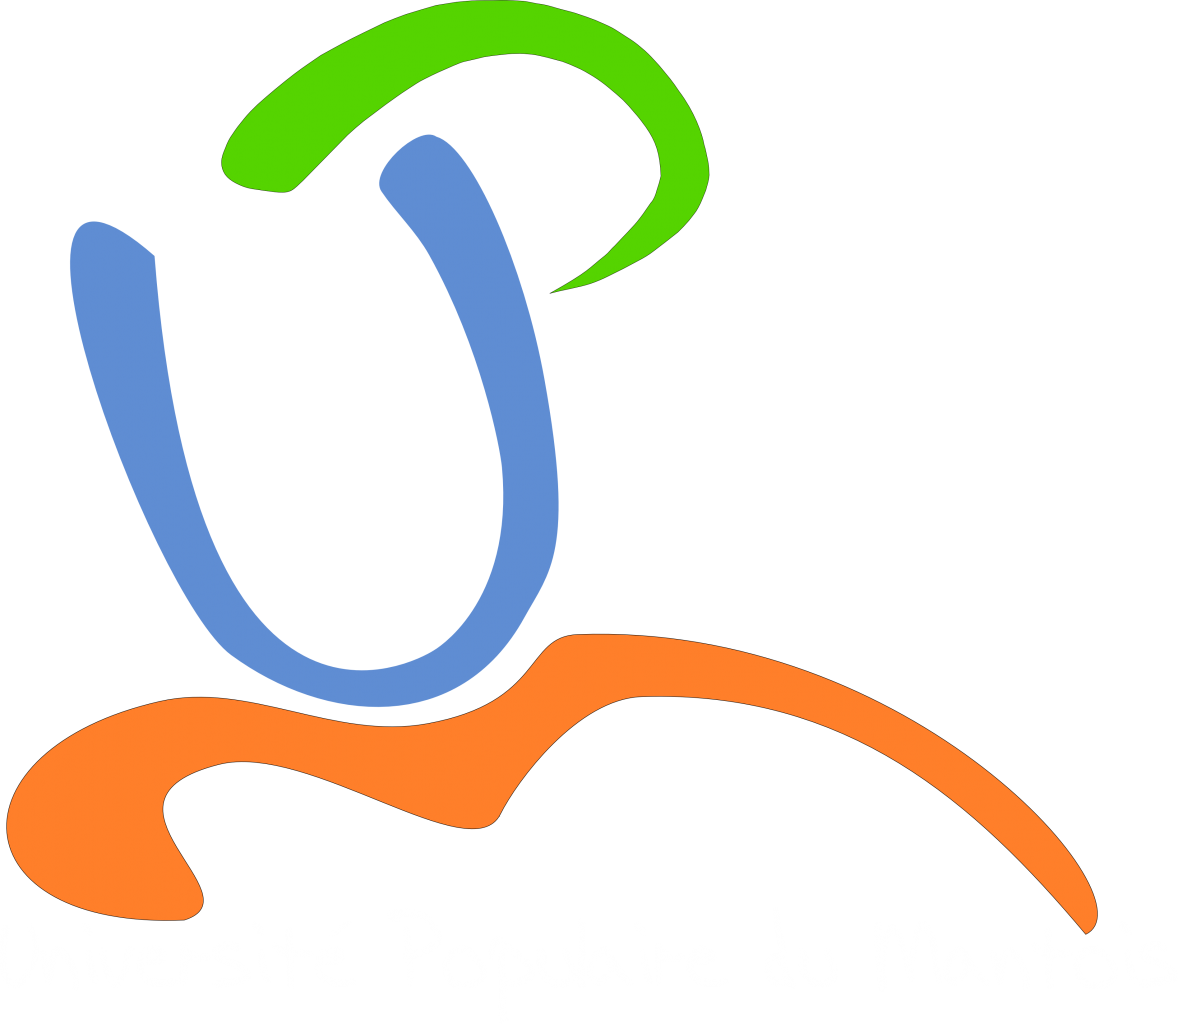 Université Populaire du Mantois